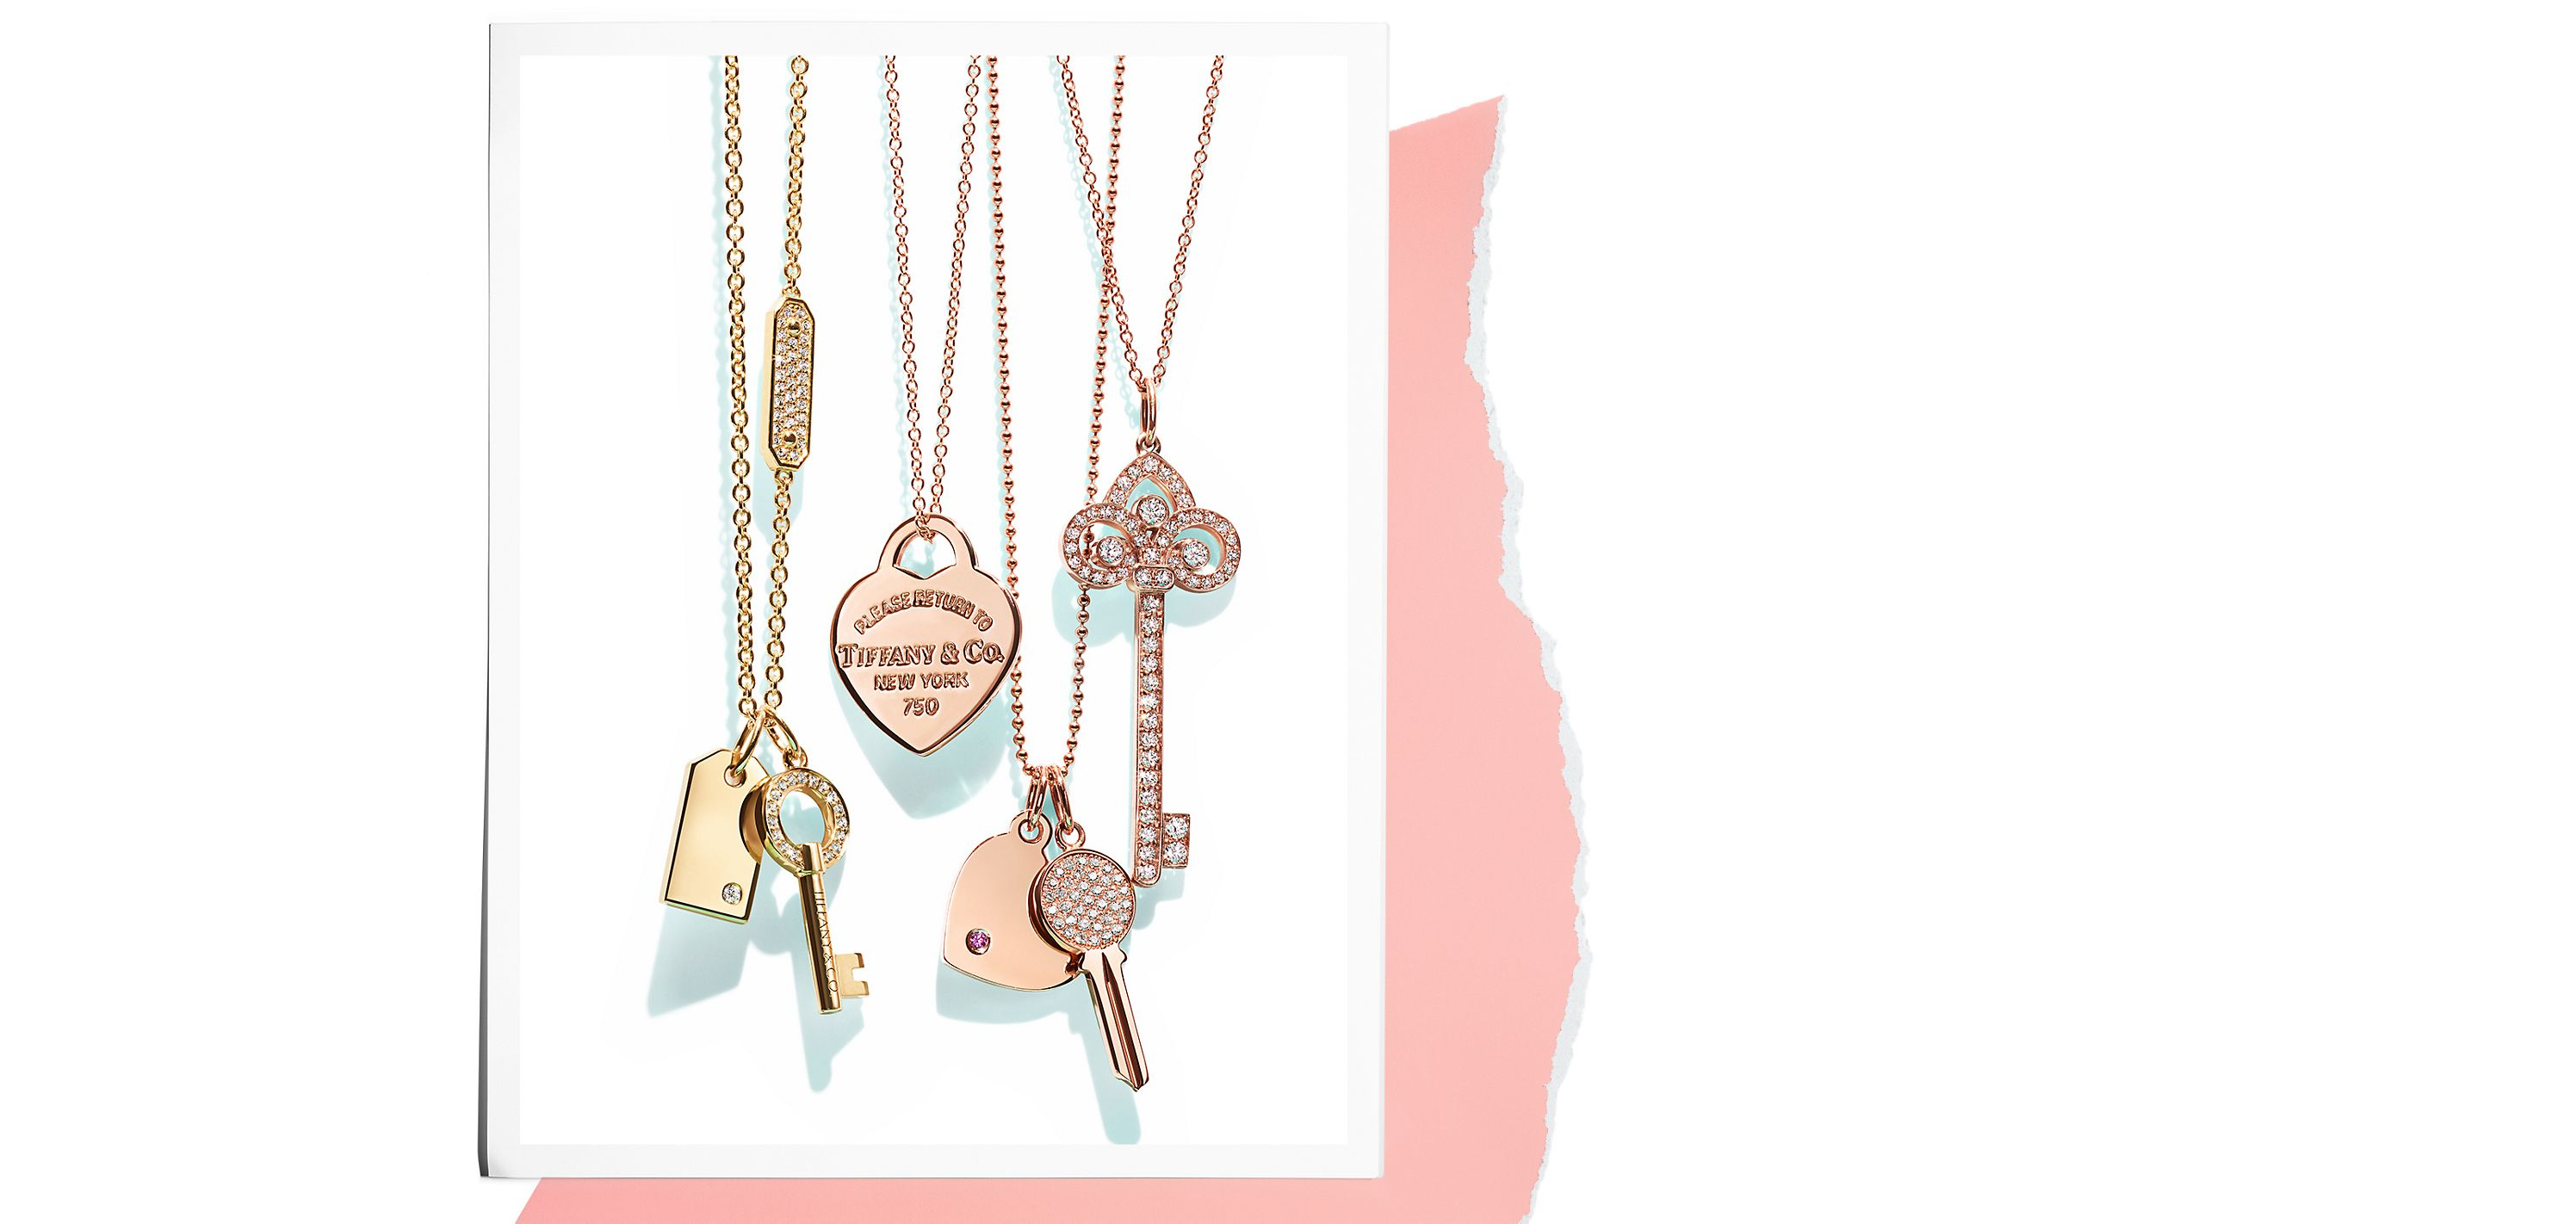 Browse Tiffany & Co. Tiffany Keys & Charms